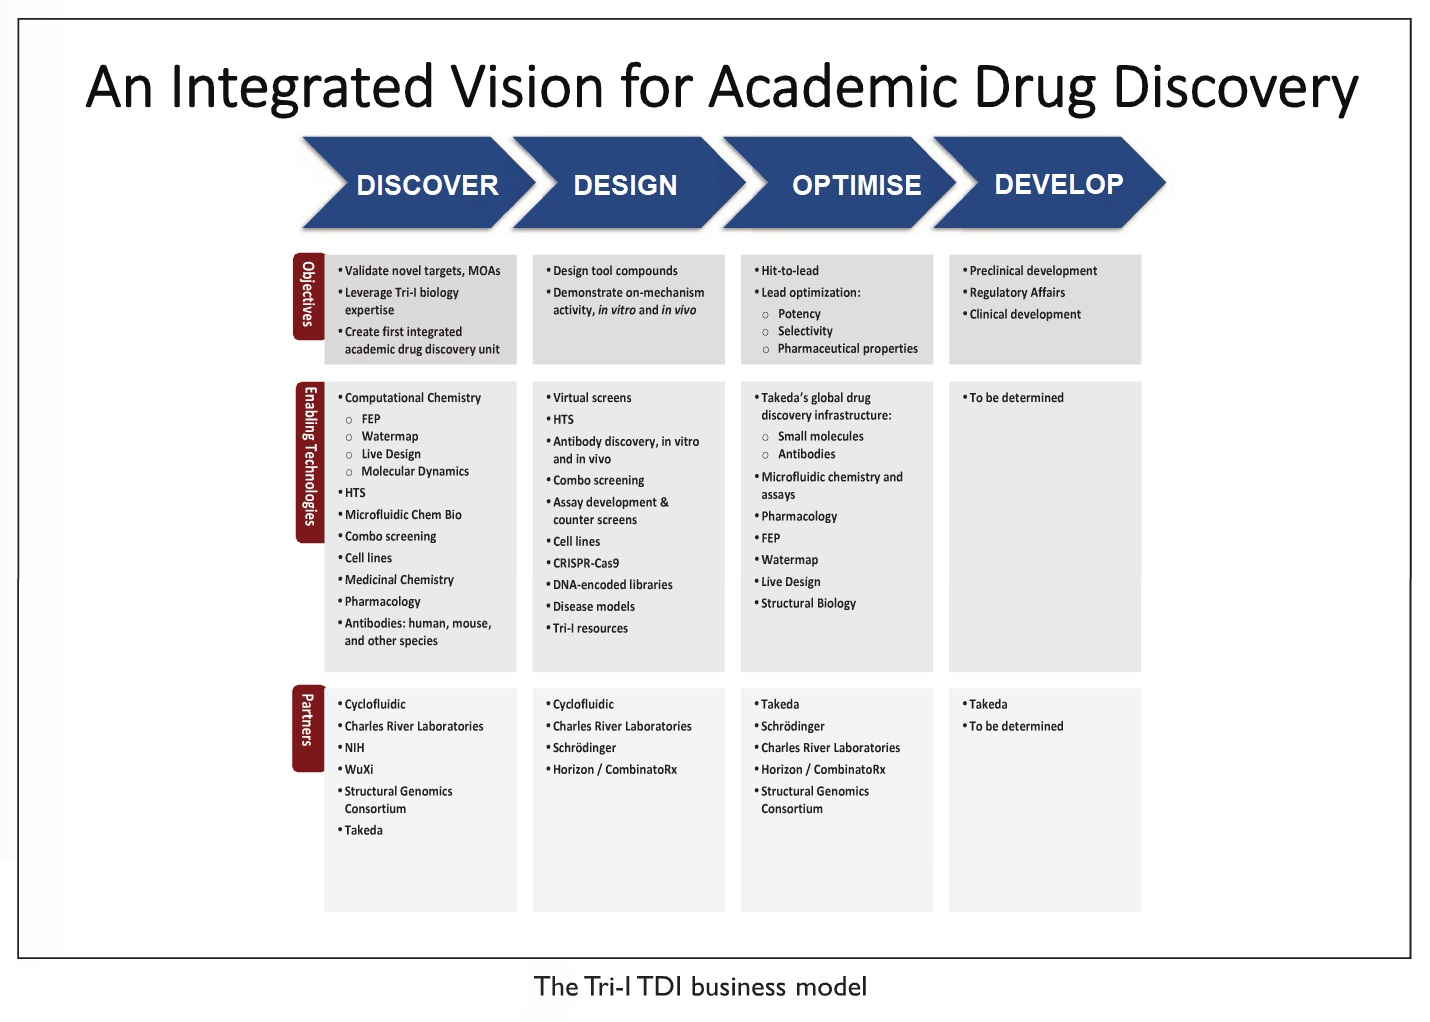 Image 3 An integrated vision for academic drug discovery